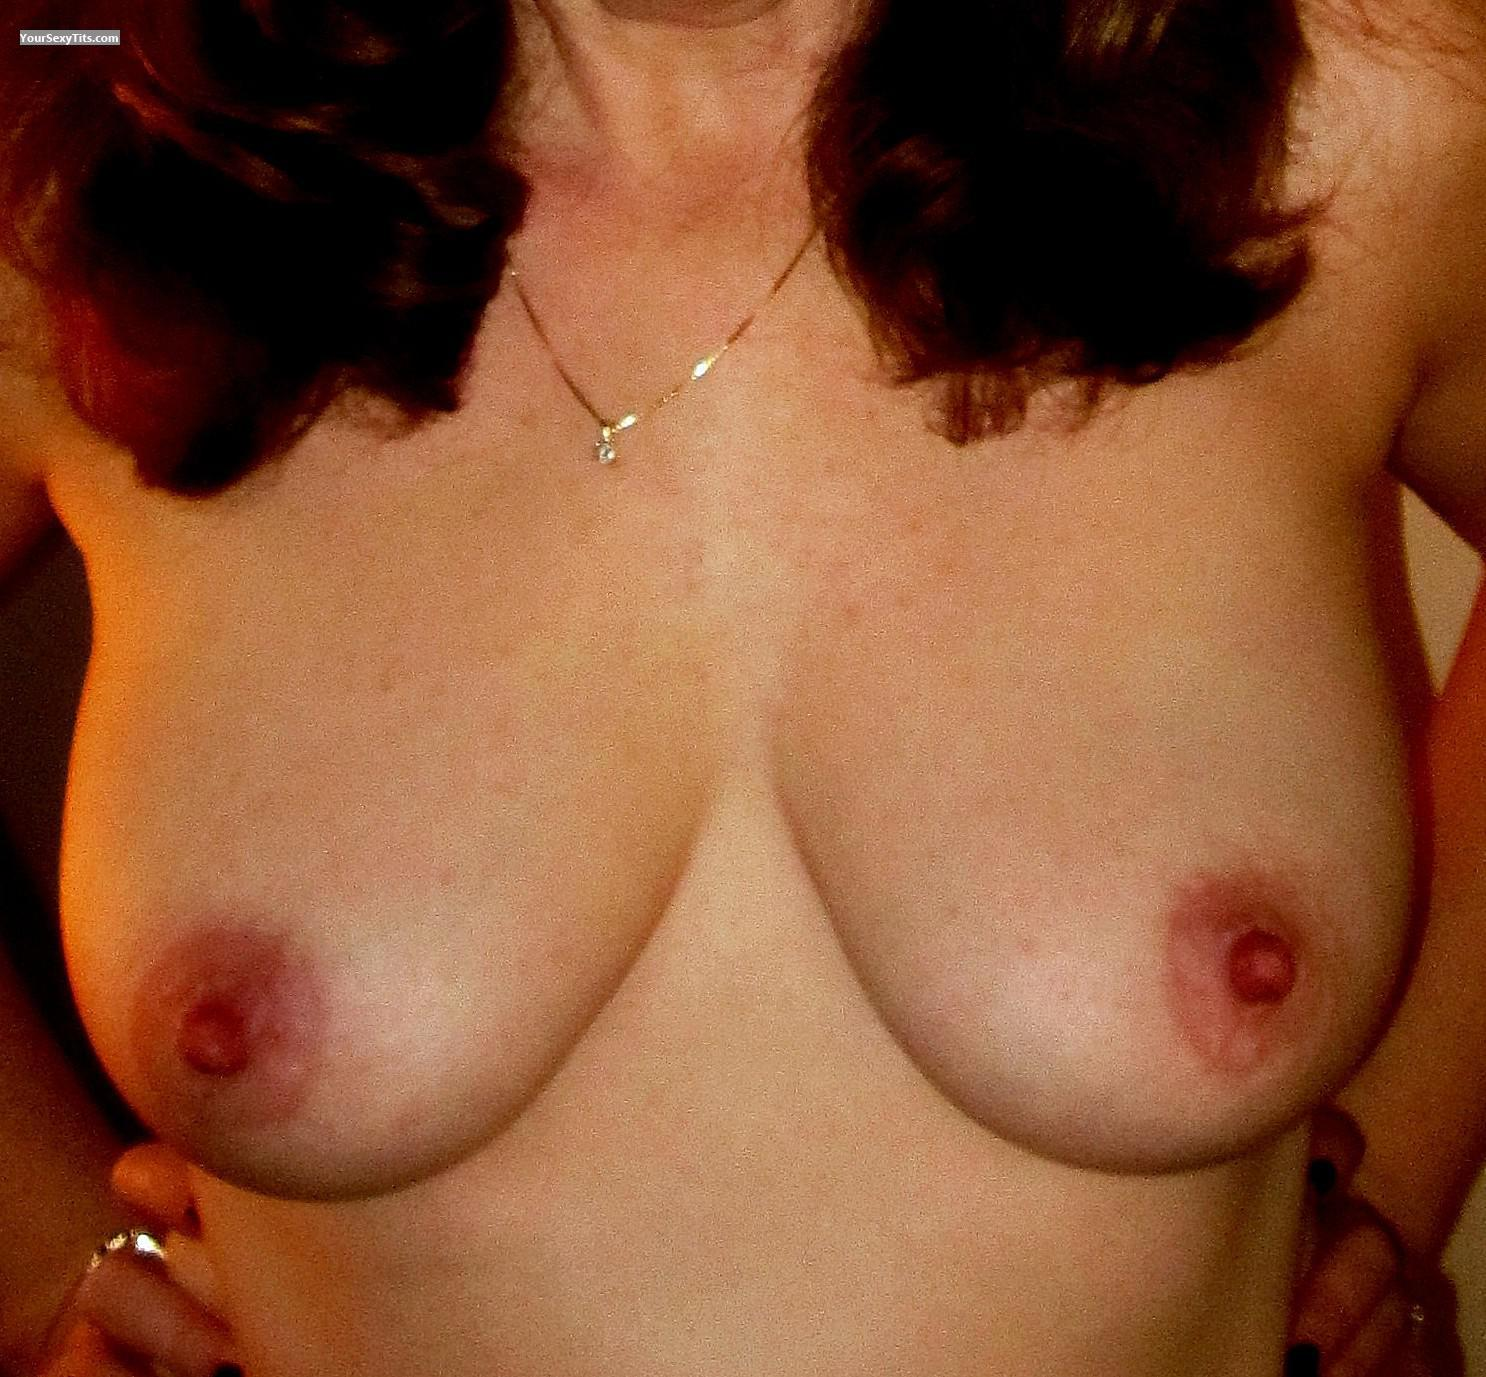 Tit Flash: My Big Tits (Selfie) - MJ from United States